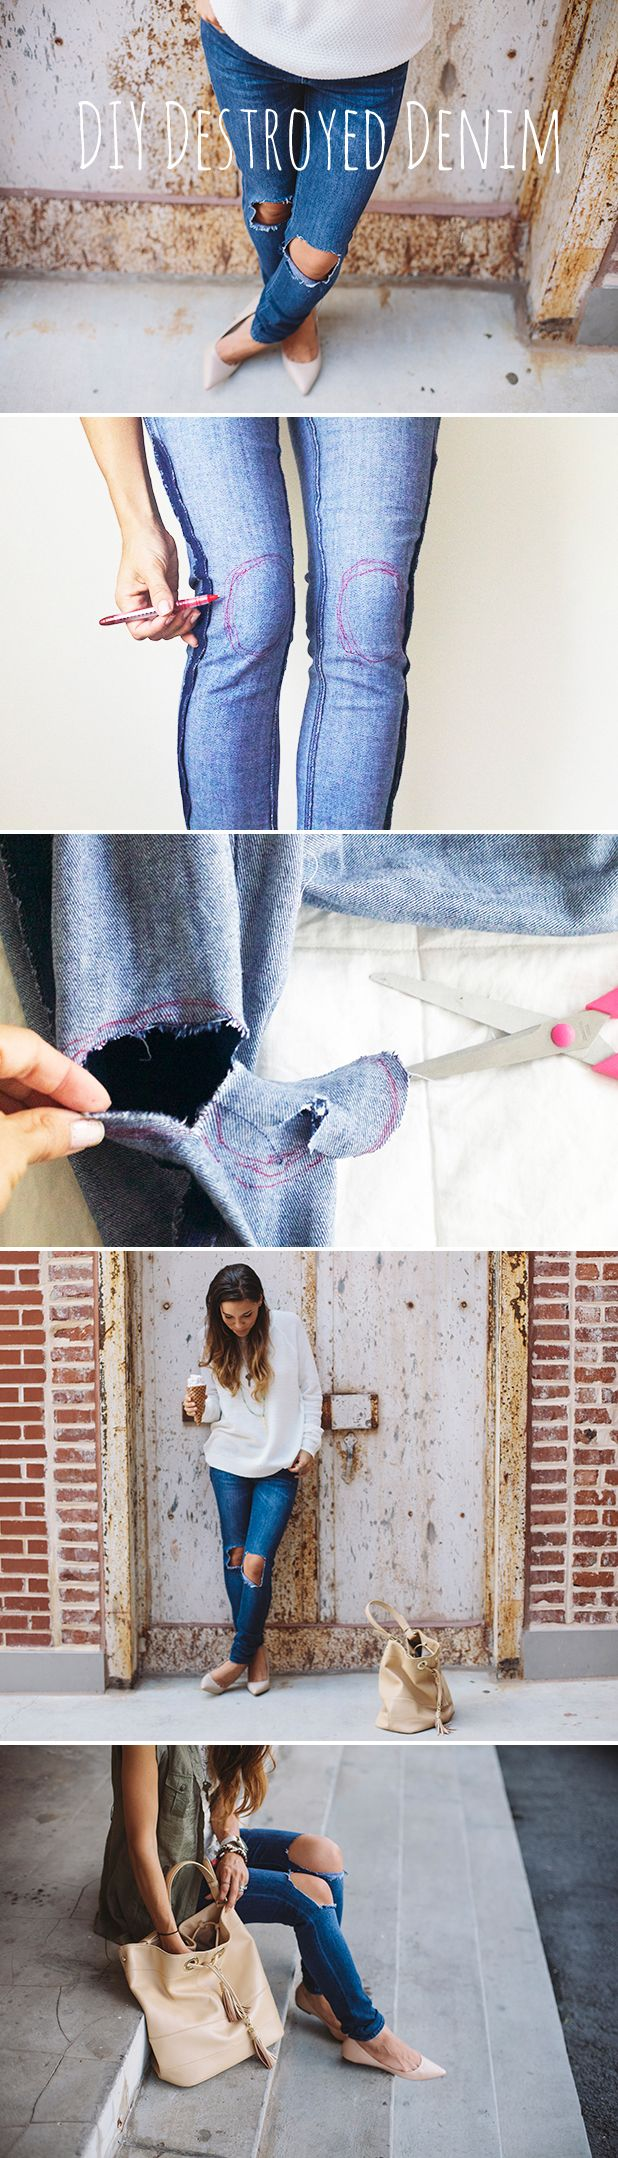 DIY destroyed denim jeans. Don't over pay for trendy jeans when you can make your own with an old pair! Instructions here.